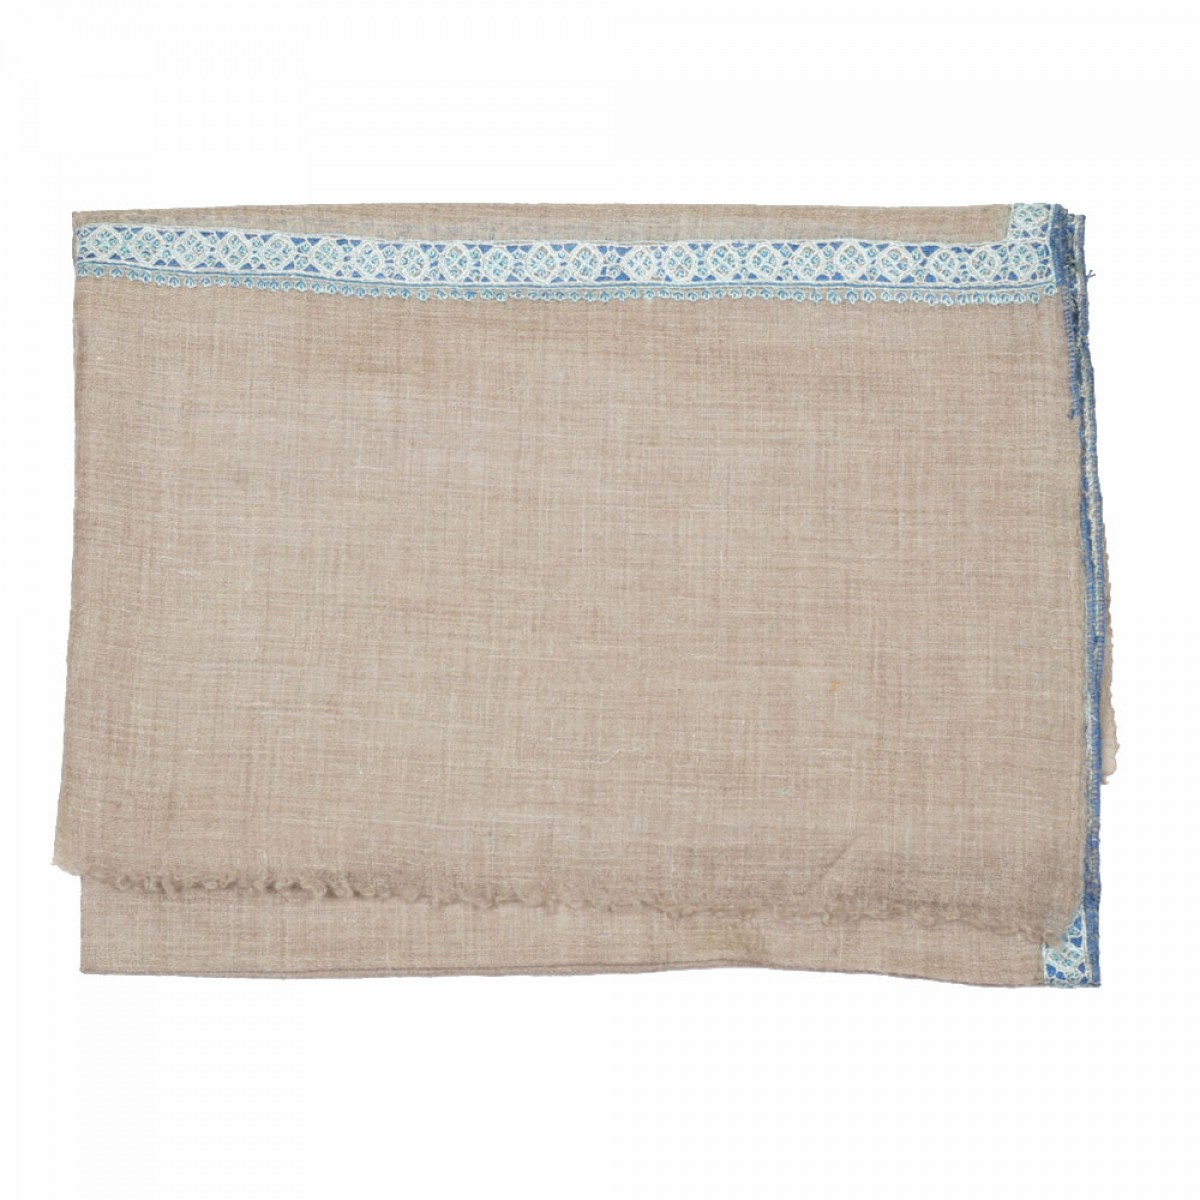 Embroidery Handloom Pashmina Scarf - Natural Blue